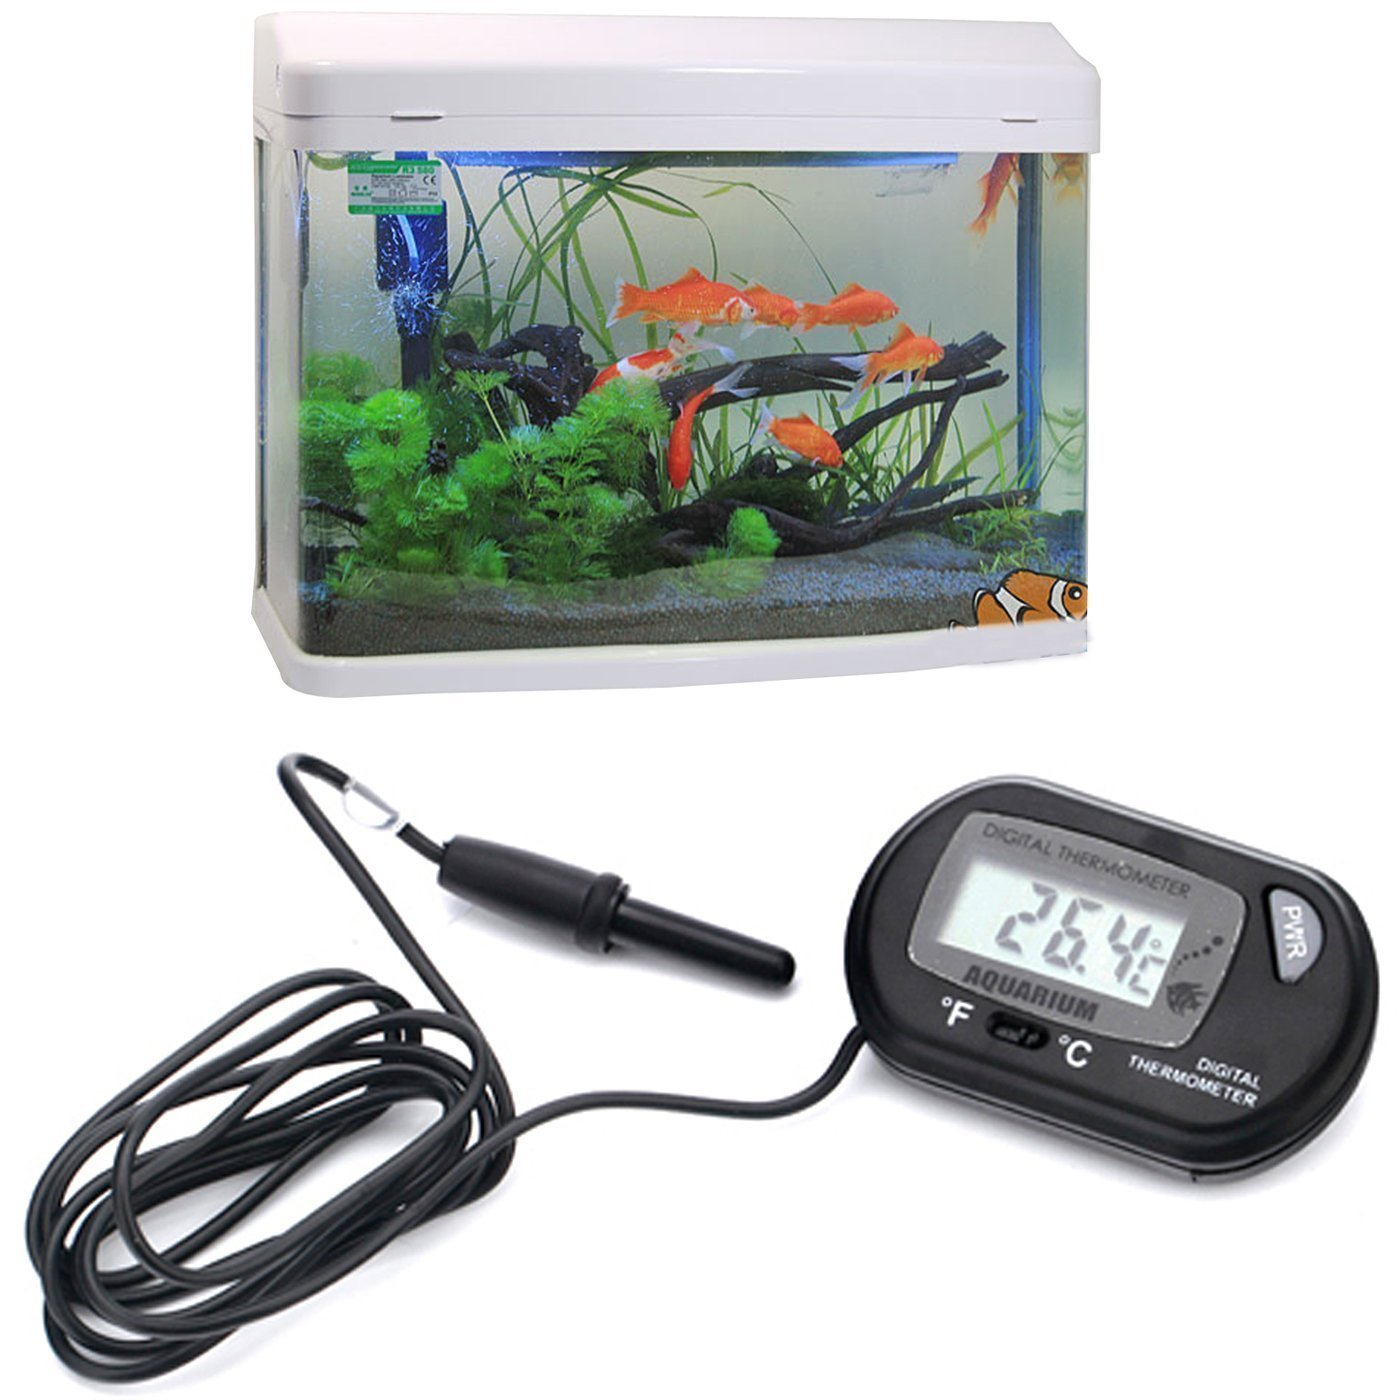 Marine control de temperature Thermostat pour Digital leau daquarium Thermometre